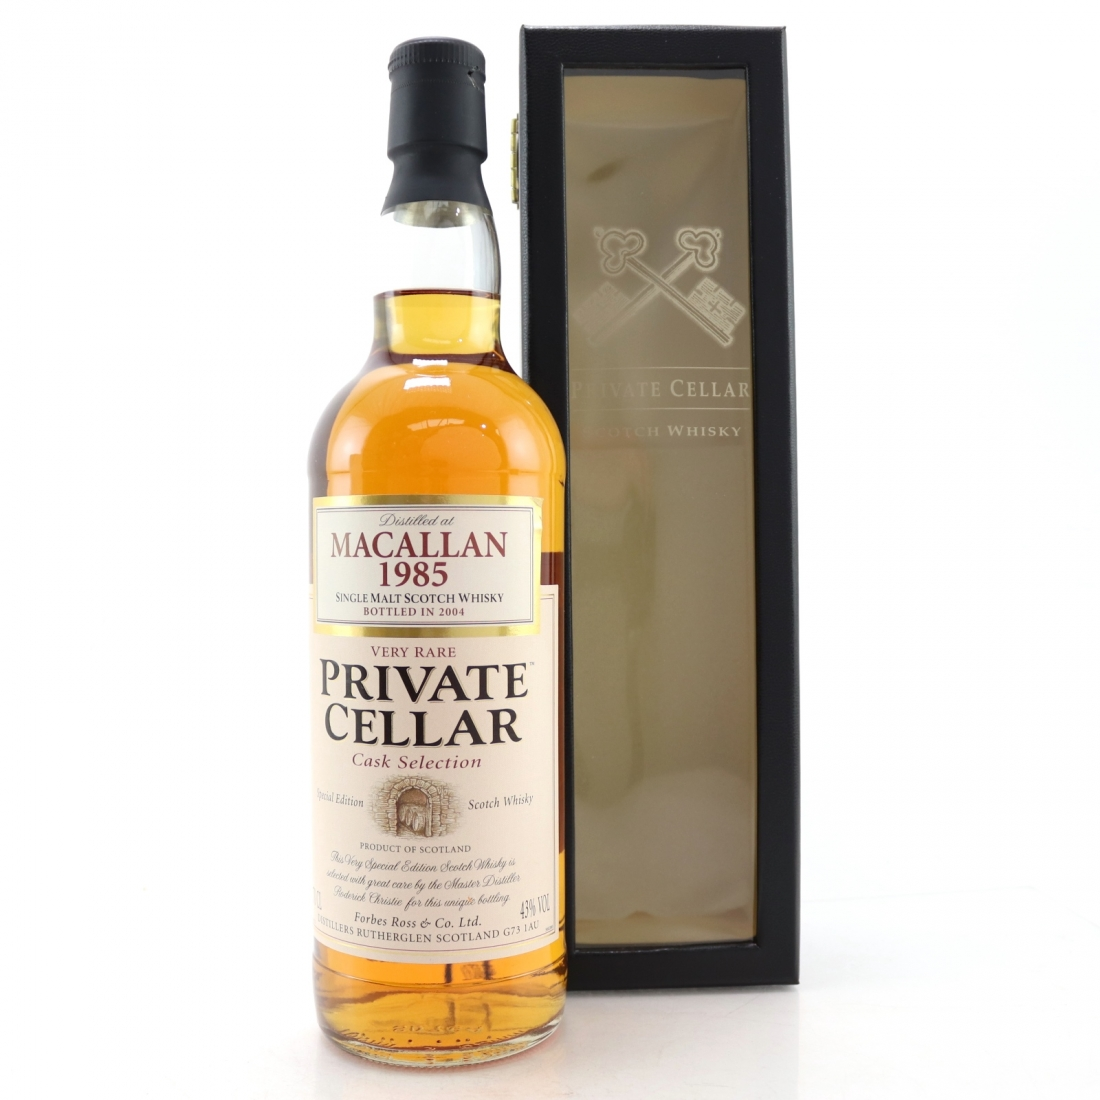 Macallan 1985 Private Cellar